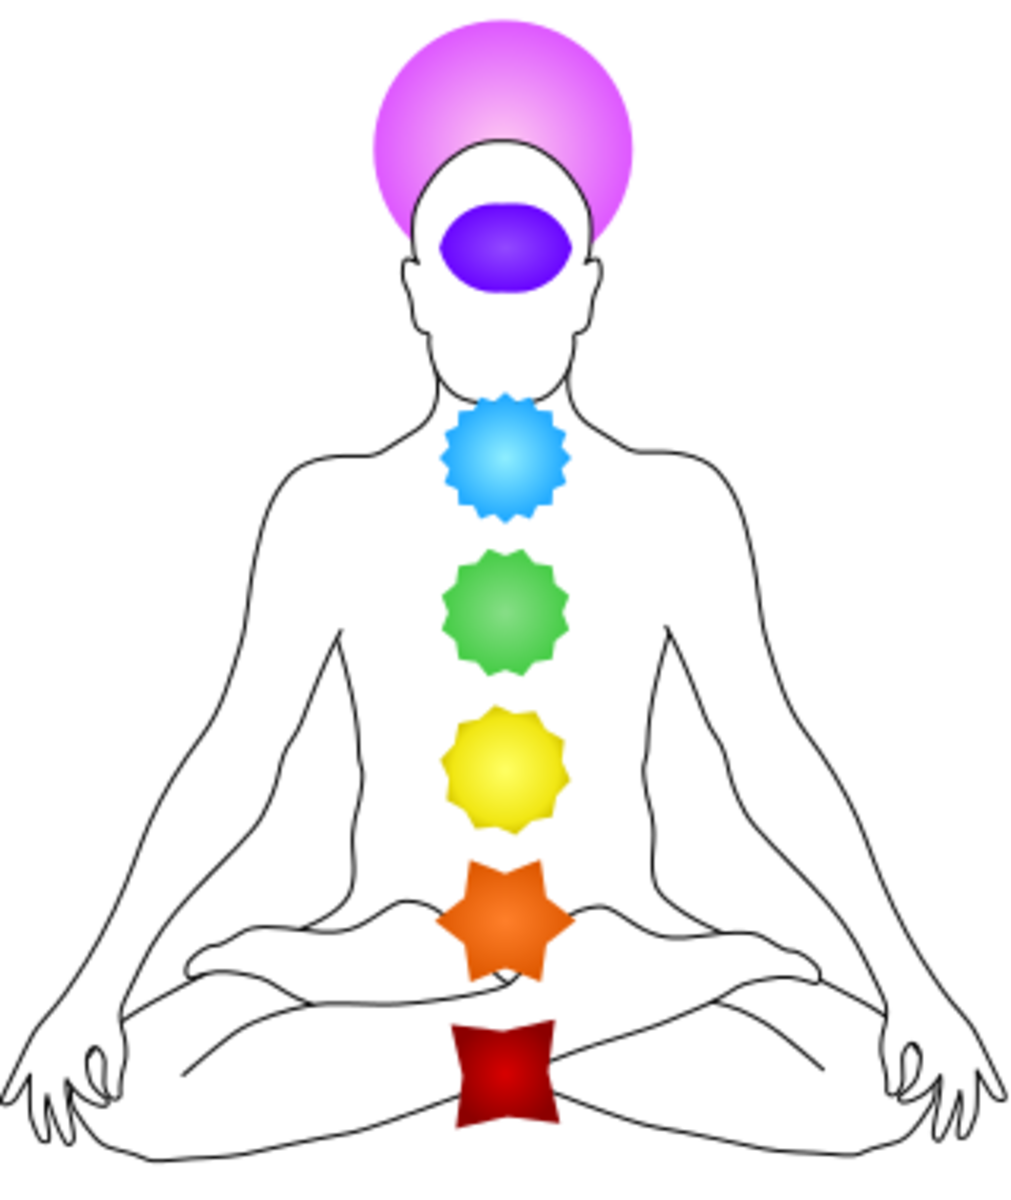 The seven main chakras of the human body.